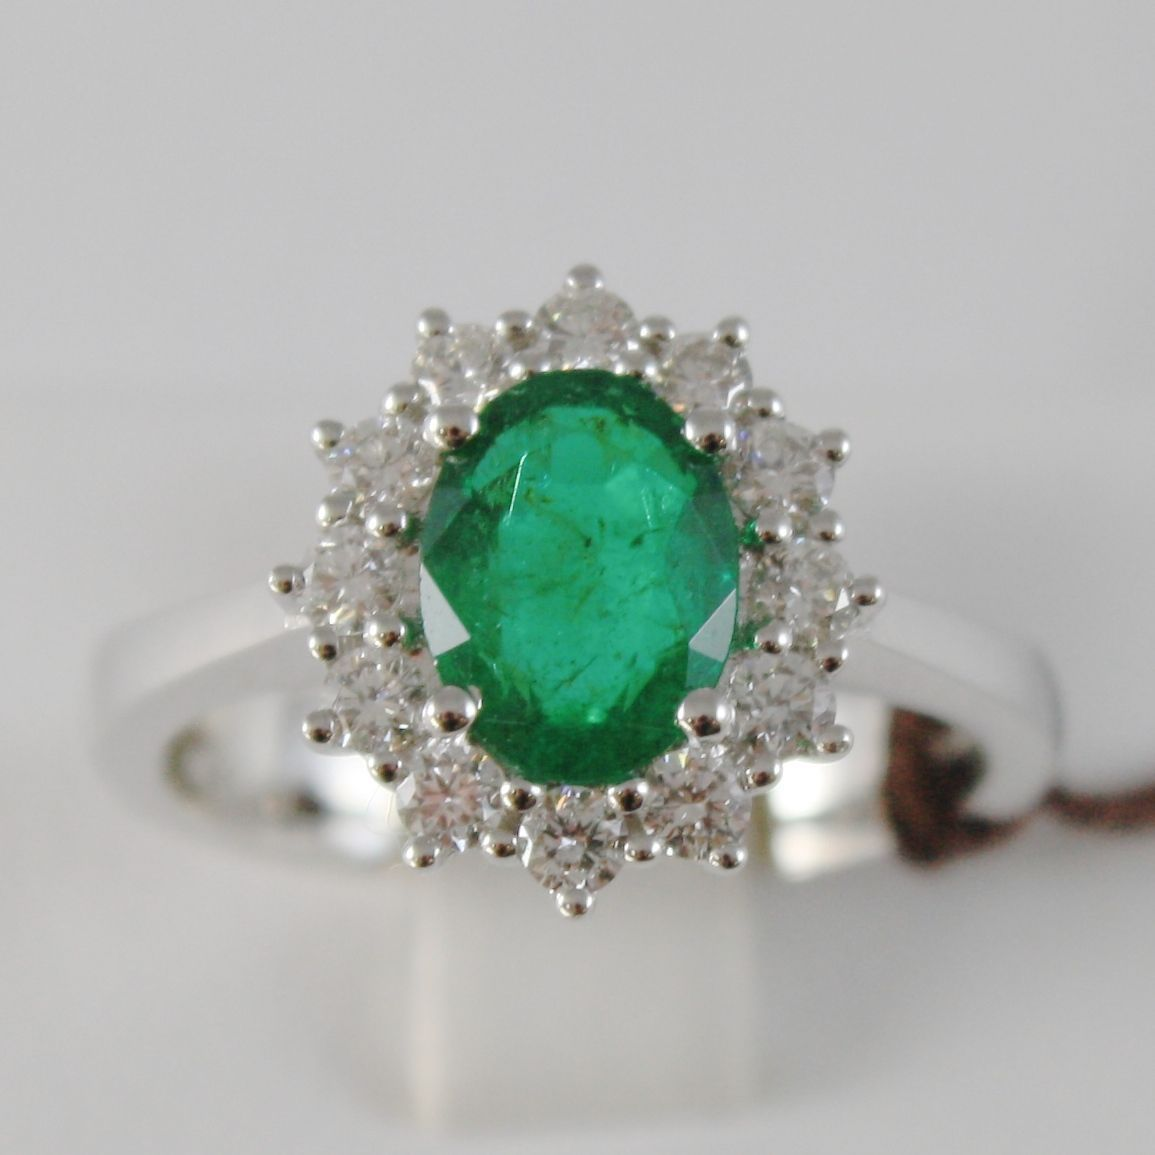 18K WHITE GOLD FLOWER RING WITH DIAMONDS & OVAL GREEN EMERALD, MADE IN ITALY